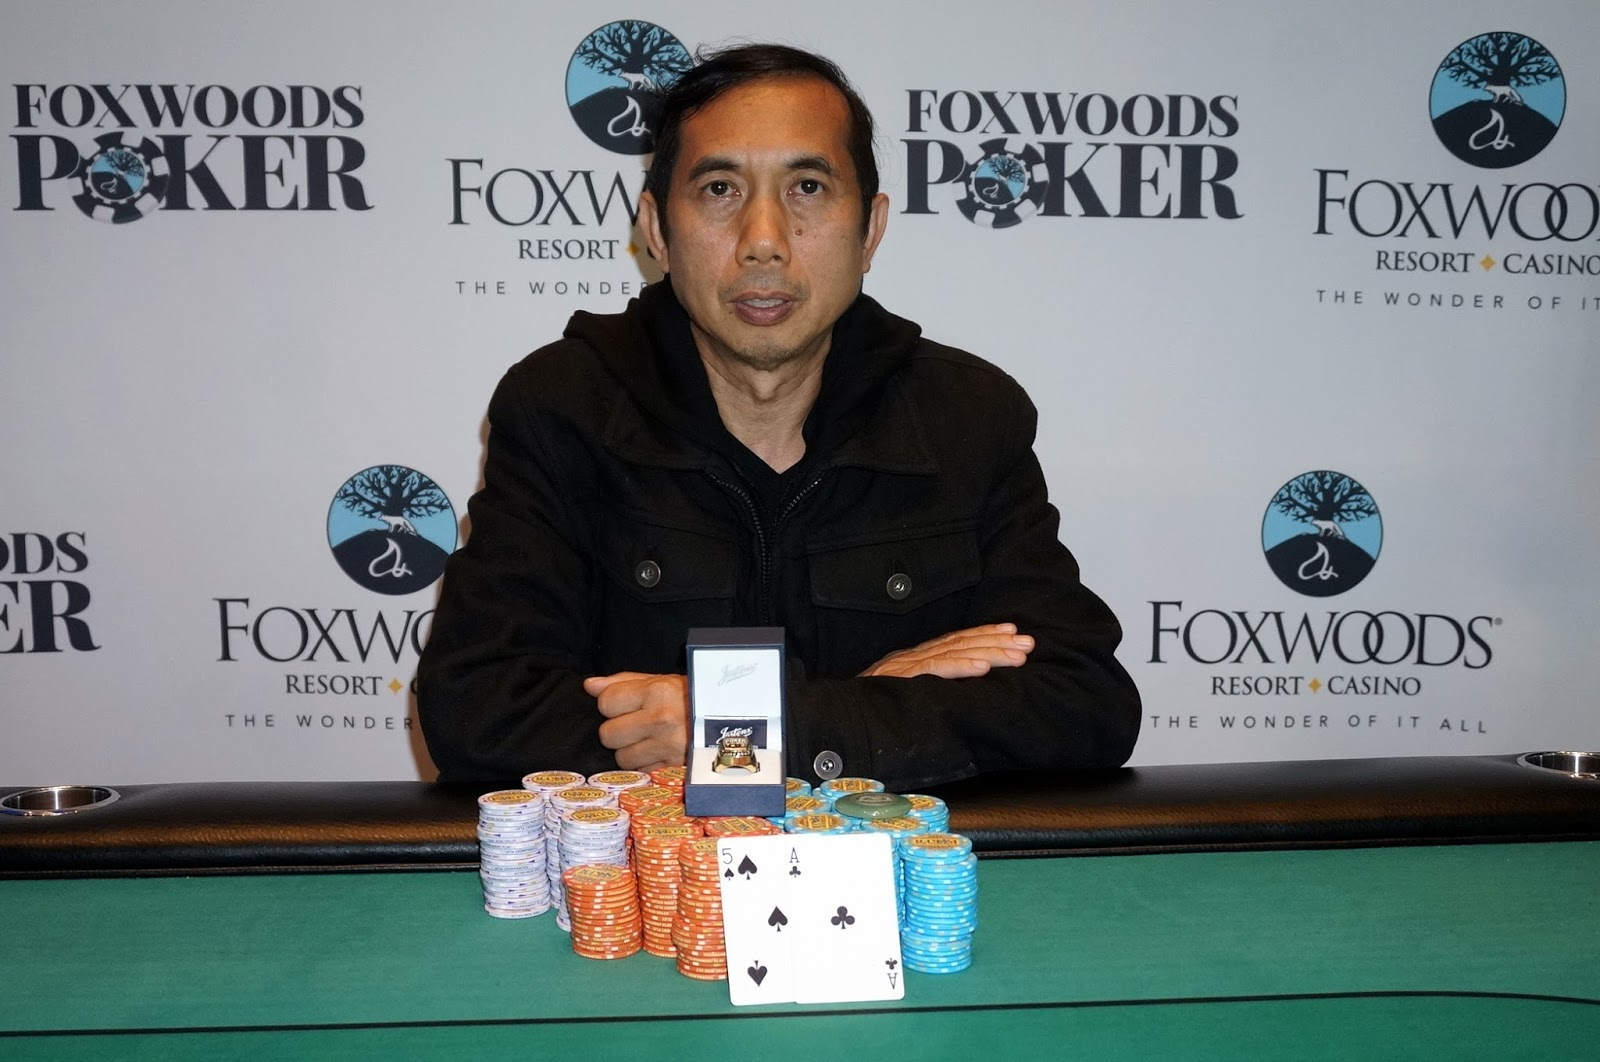 Foxwoods Poker Event 2 580 Re Entry Panja Lymswan Wins First